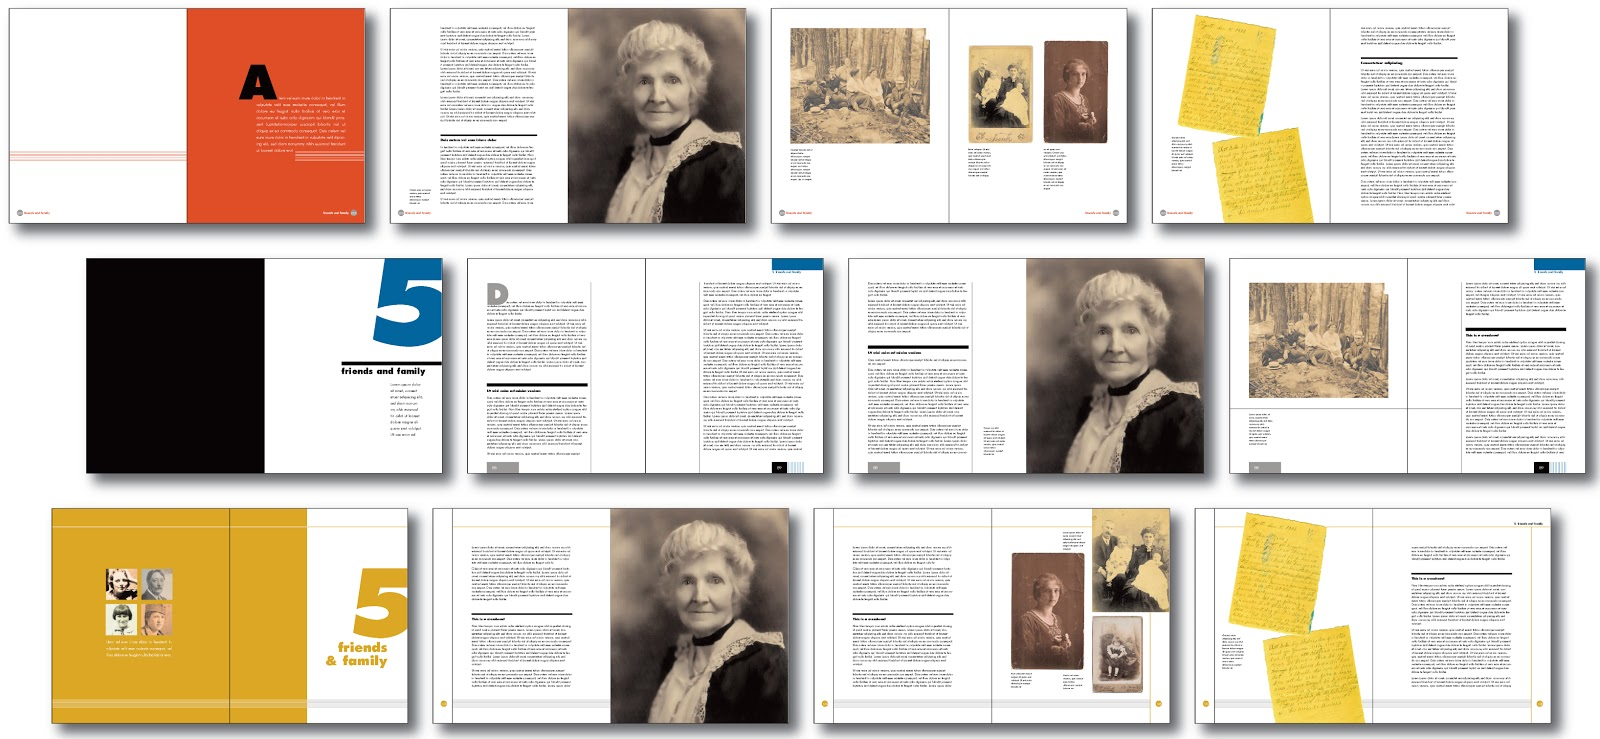 ancestry book templates - jane designed this designs for a book of family history